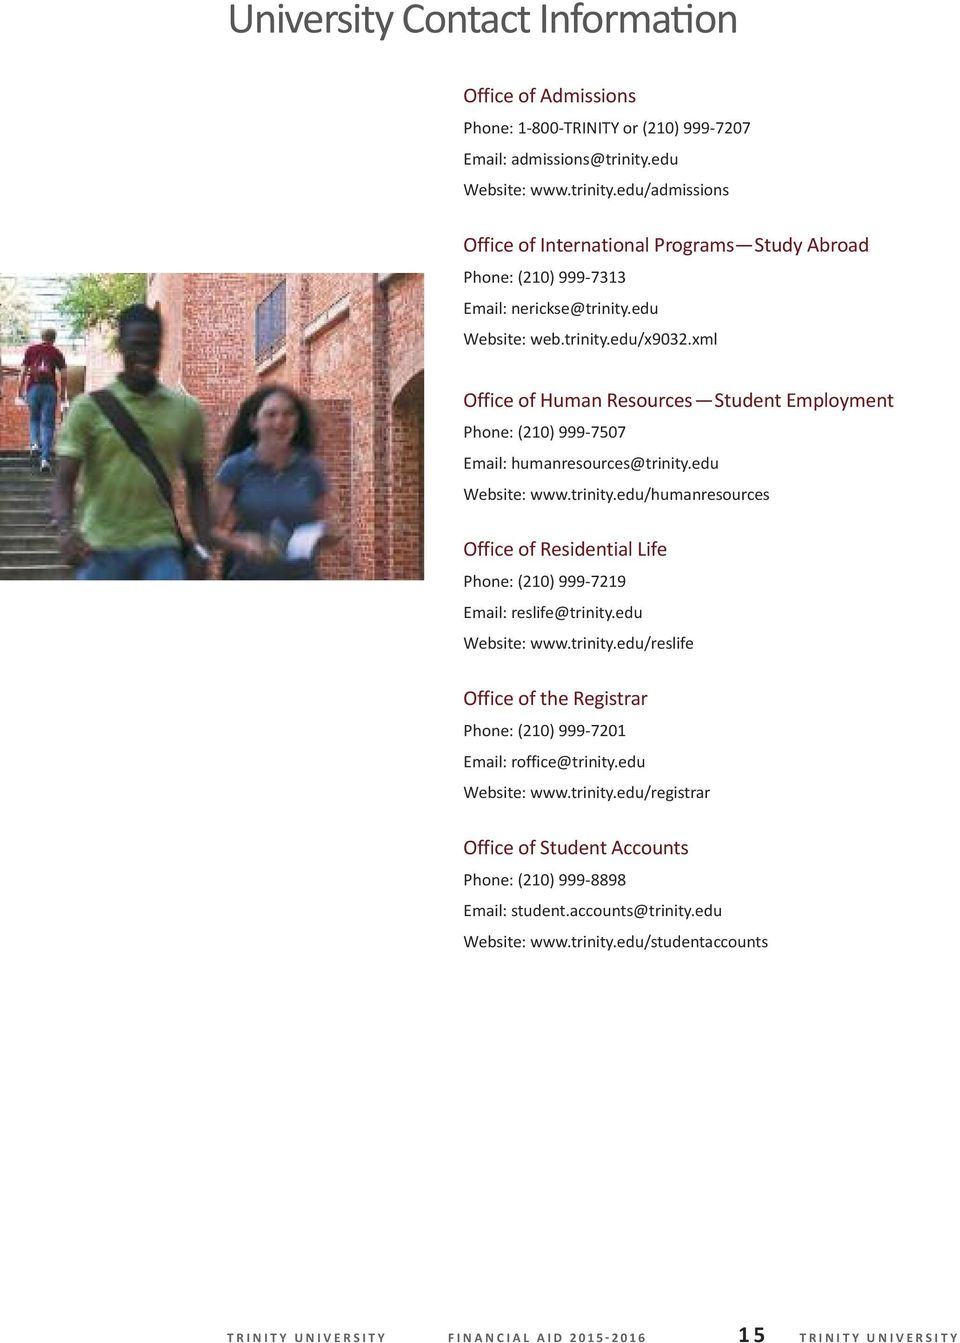 xml Office of Human Resources Student employment Phone: (210) 999-7507 email: humanresources@trinity.edu Website: www.trinity.edu/humanresources Office of Residential life Phone: (210) 999-7219 email: reslife@trinity.